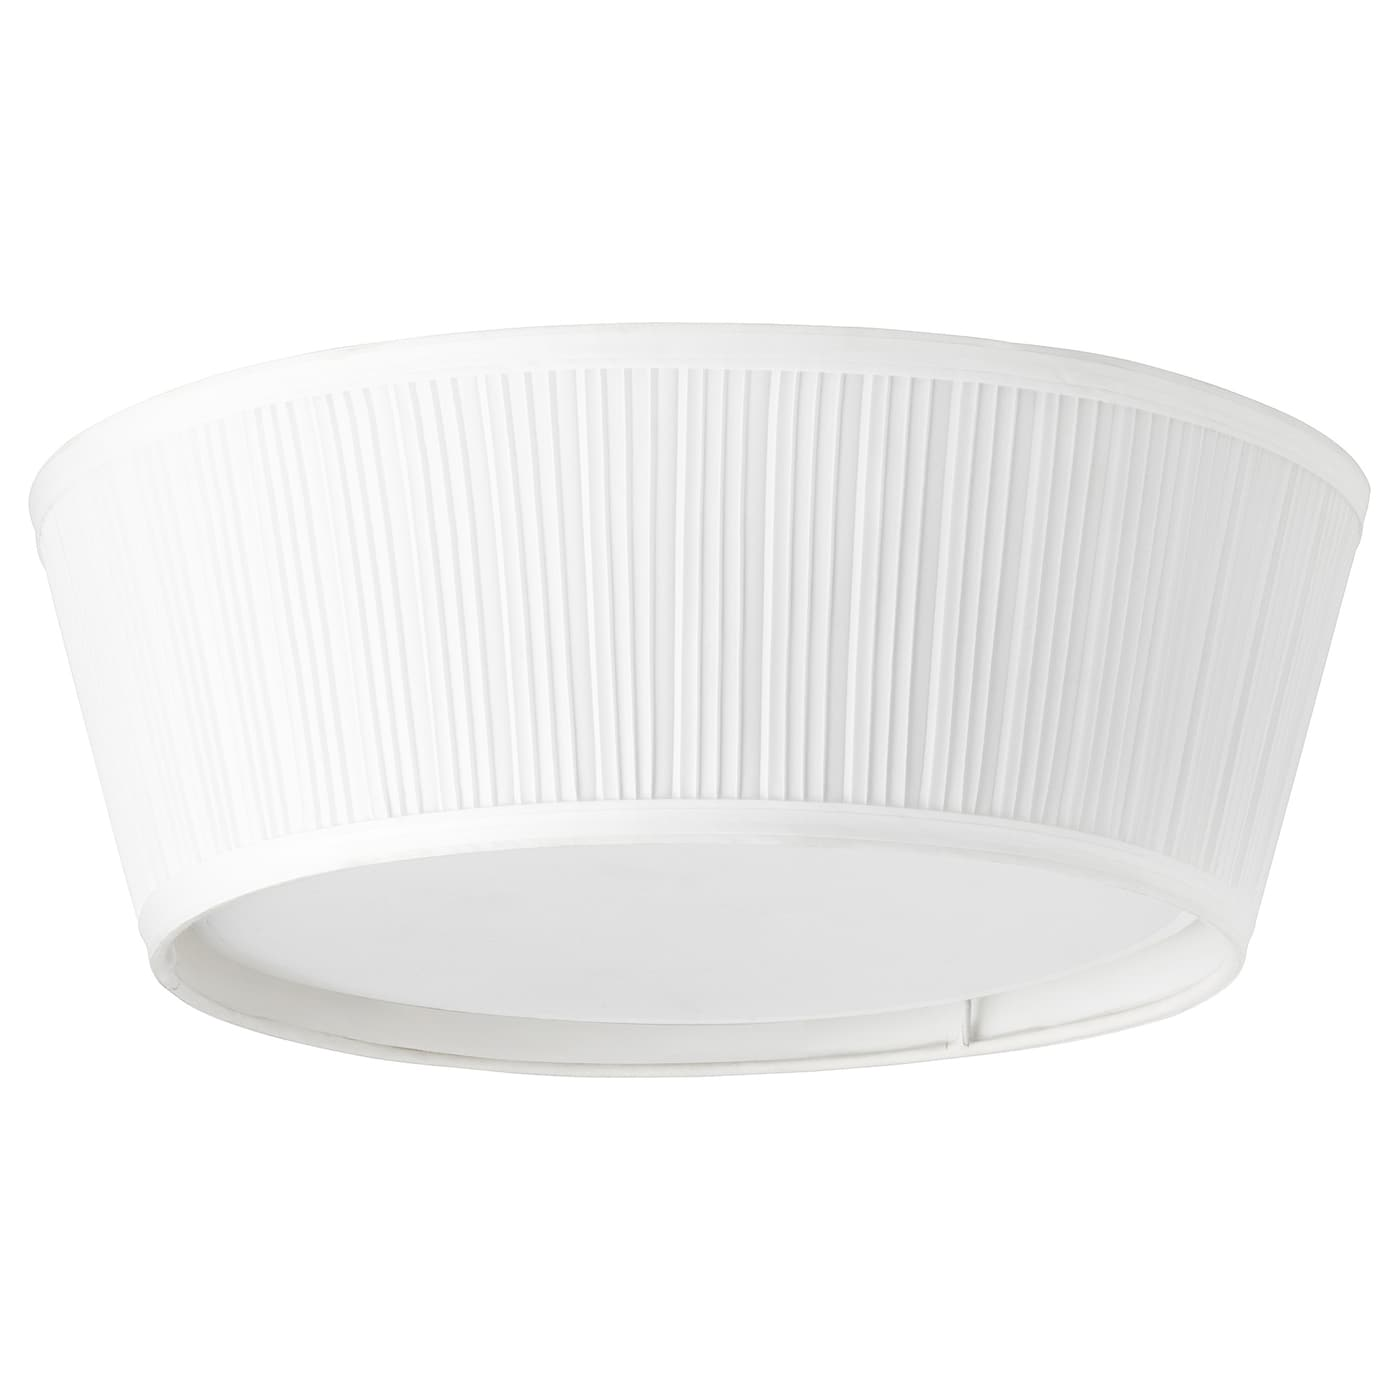 IKEA ÅRSTID ceiling lamp Diffused light that provides good general light in the room.